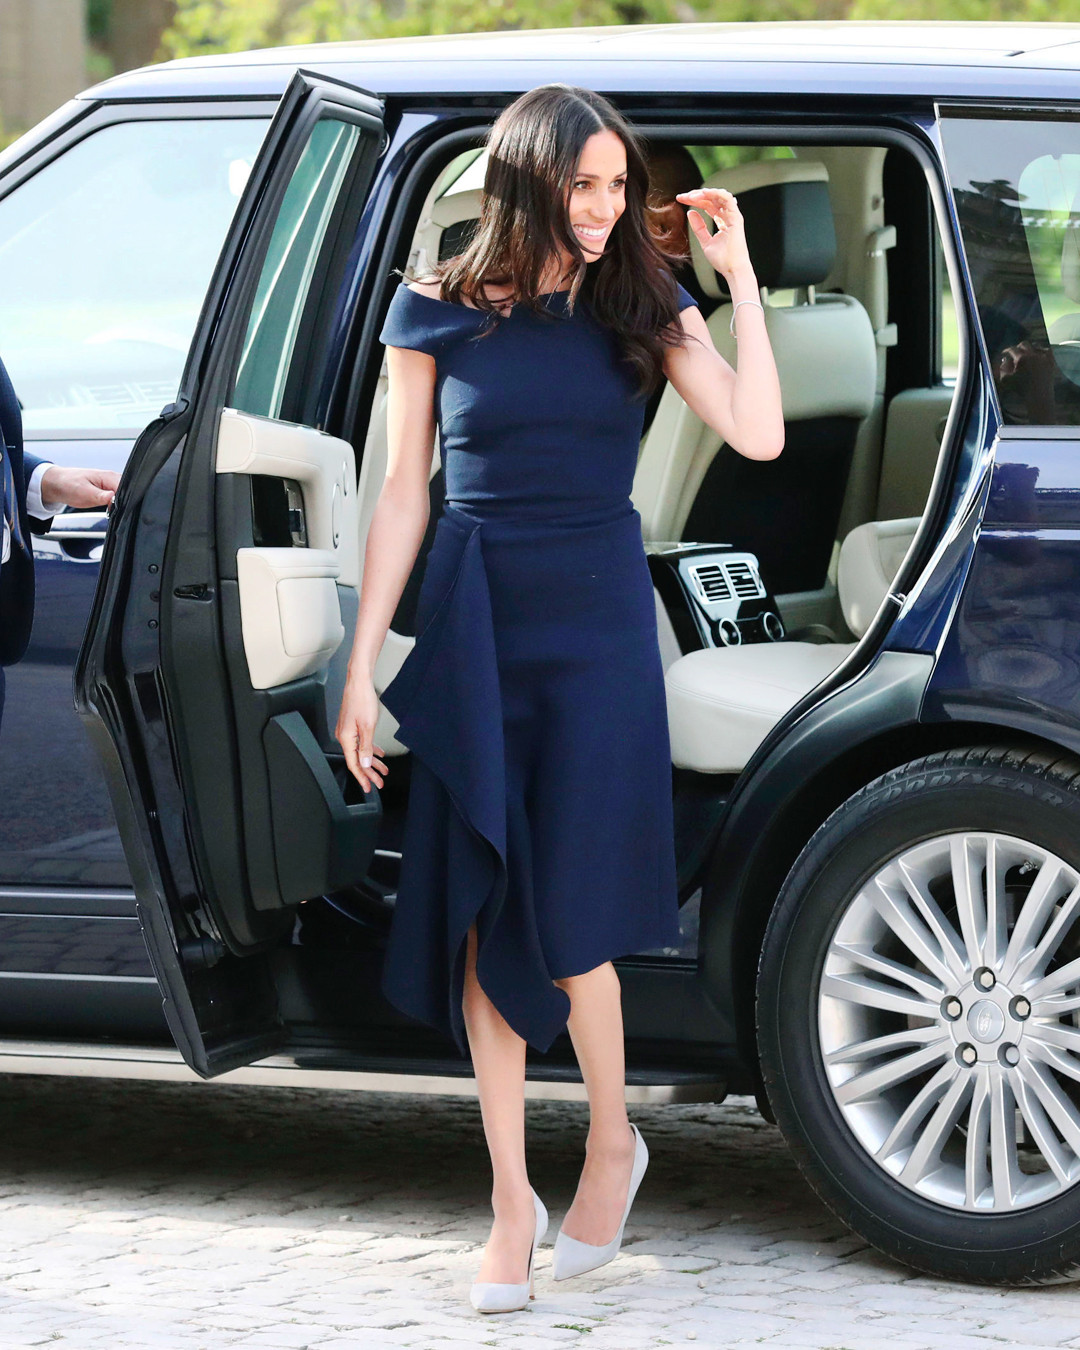 Meghan Markle Stuns In Navy Blue Roland Mouret Before Royal Wedding Women Fashion High Heels Pumps Shoes Esc